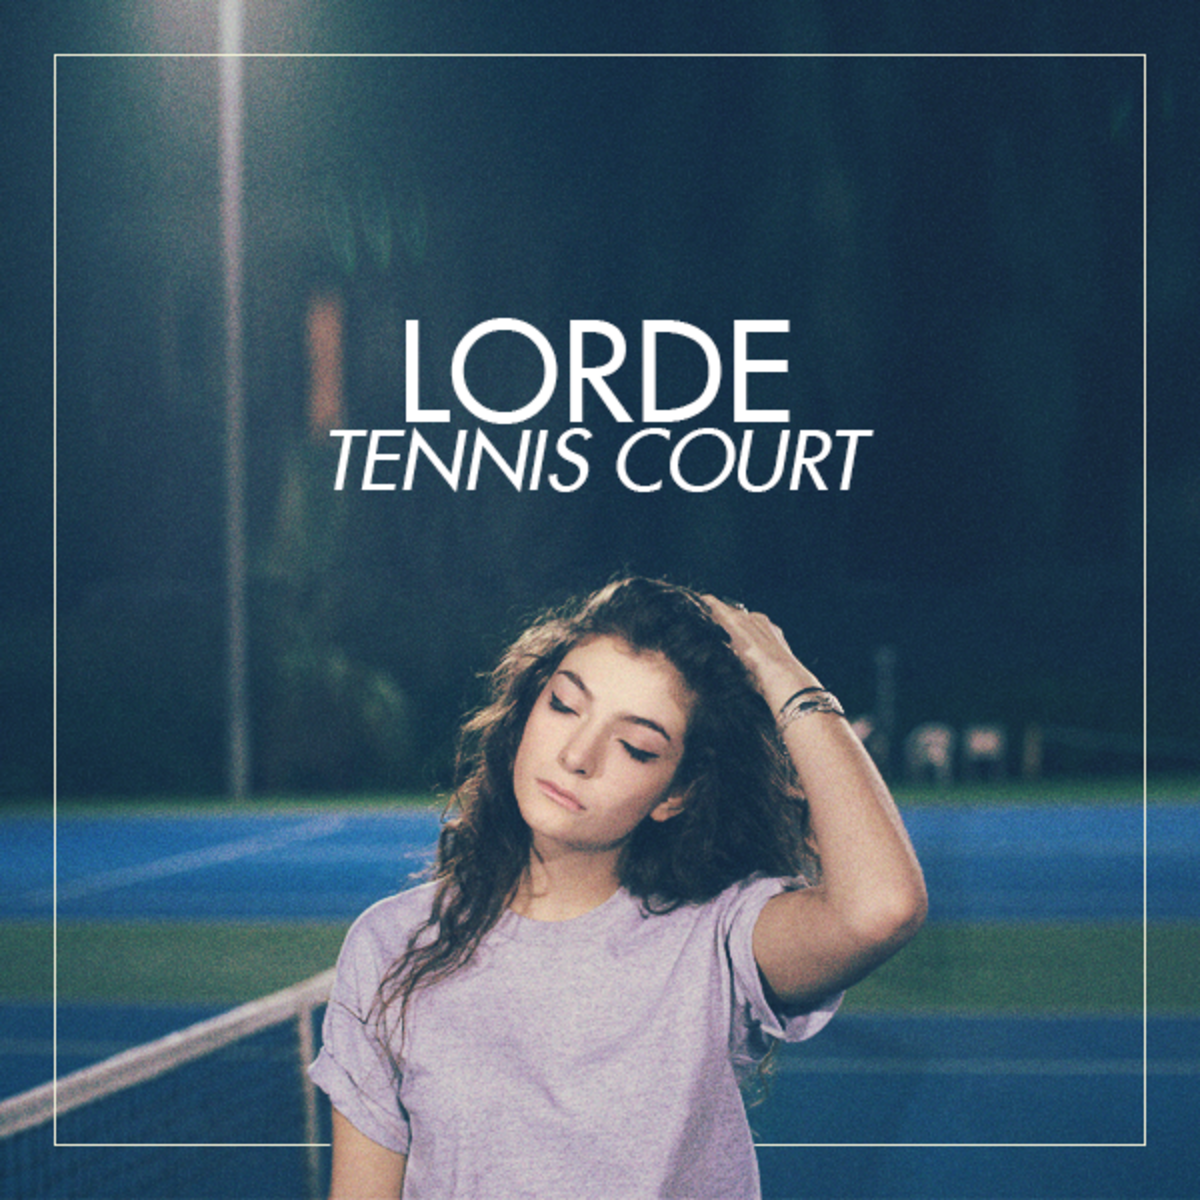 Tennis Court - Lorde